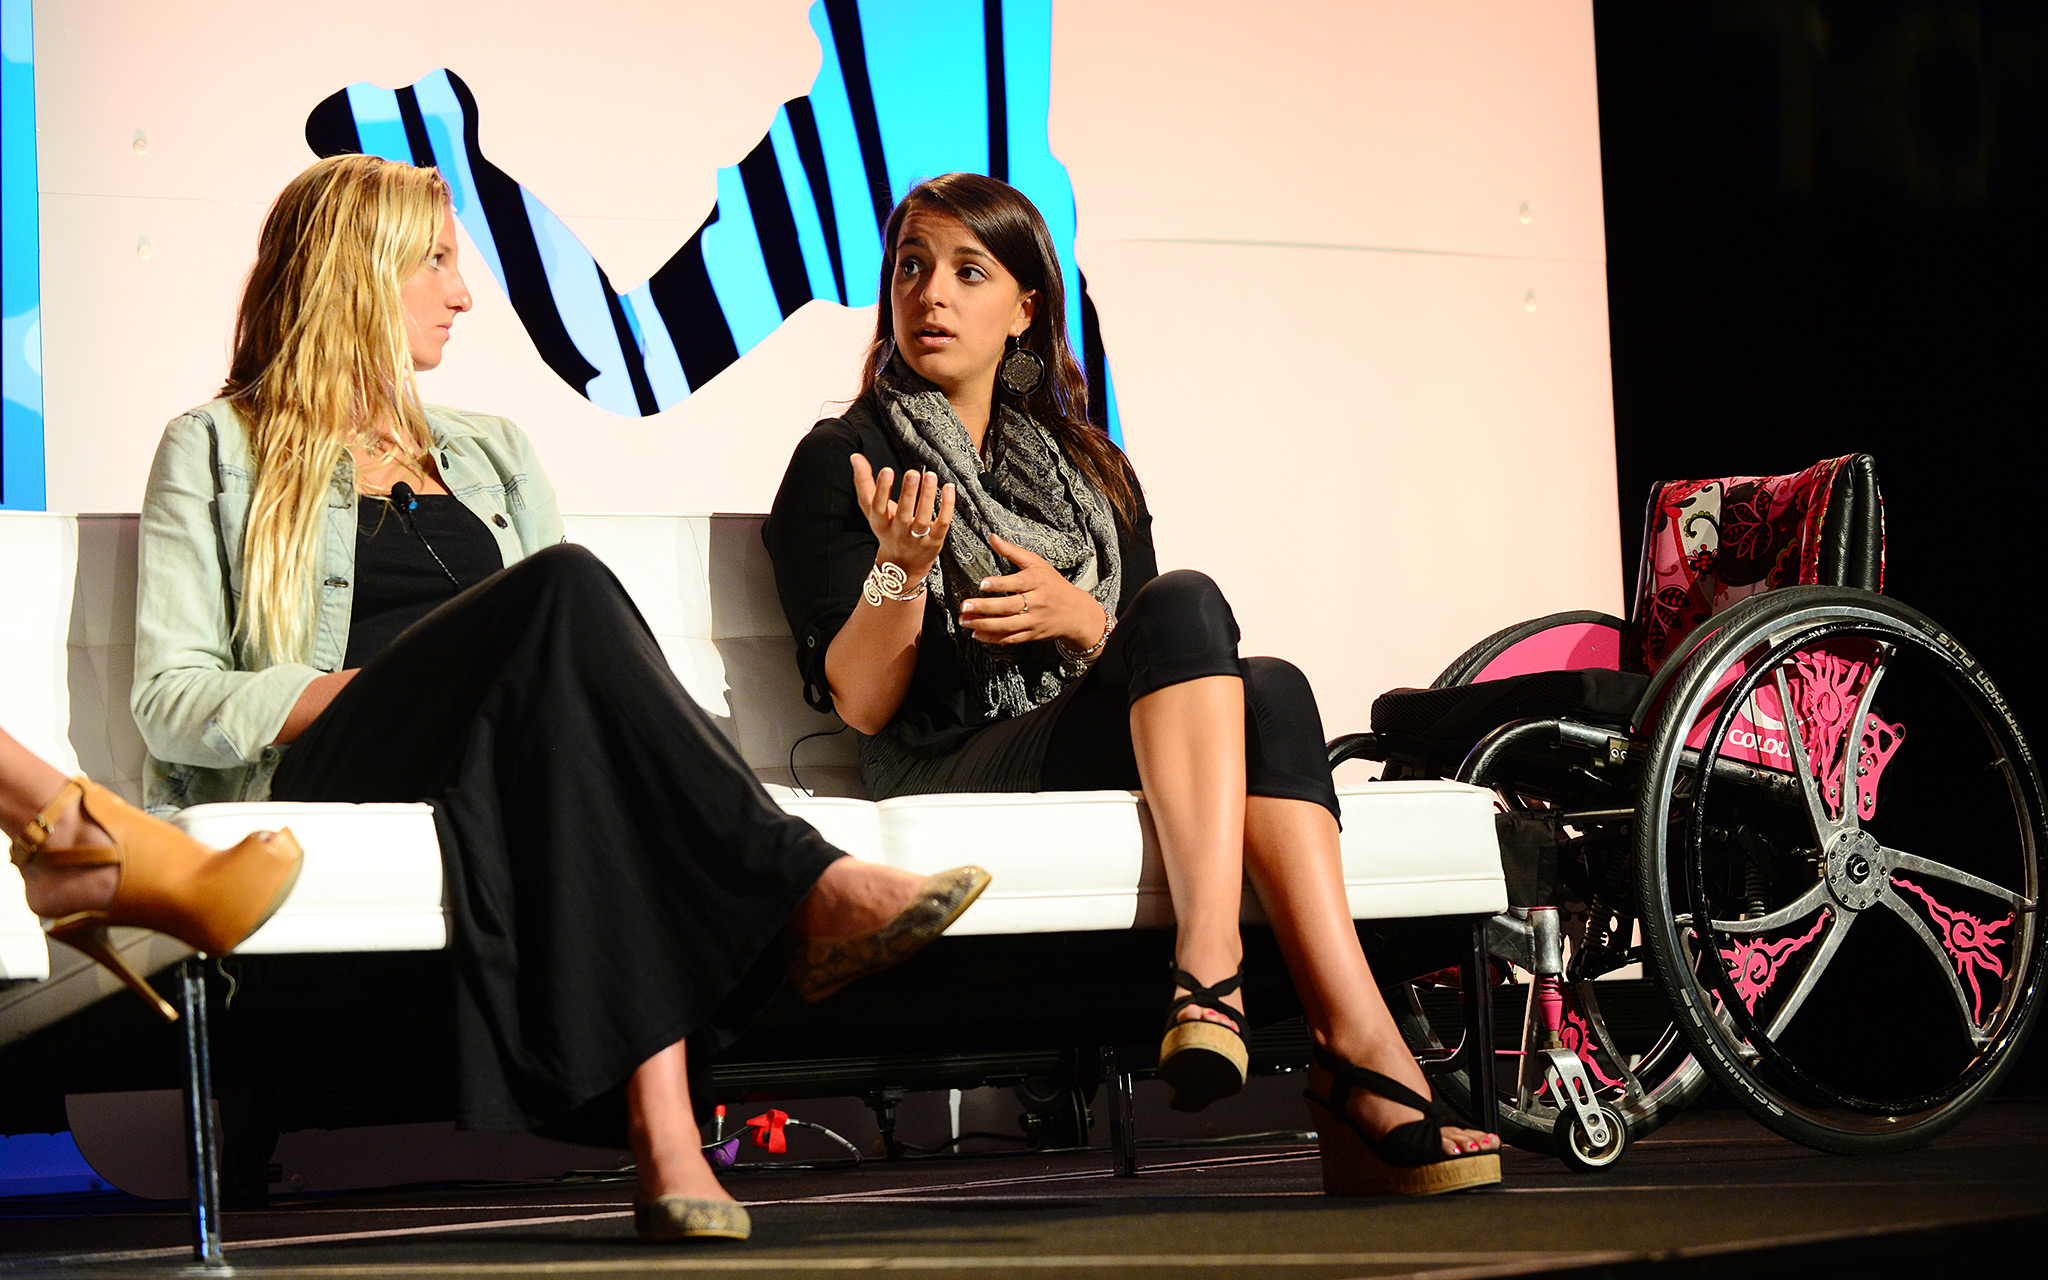 Surfer Lakey Peterson and Paralympic swimmer Victoria Arlen shared their stories during the Future panel.